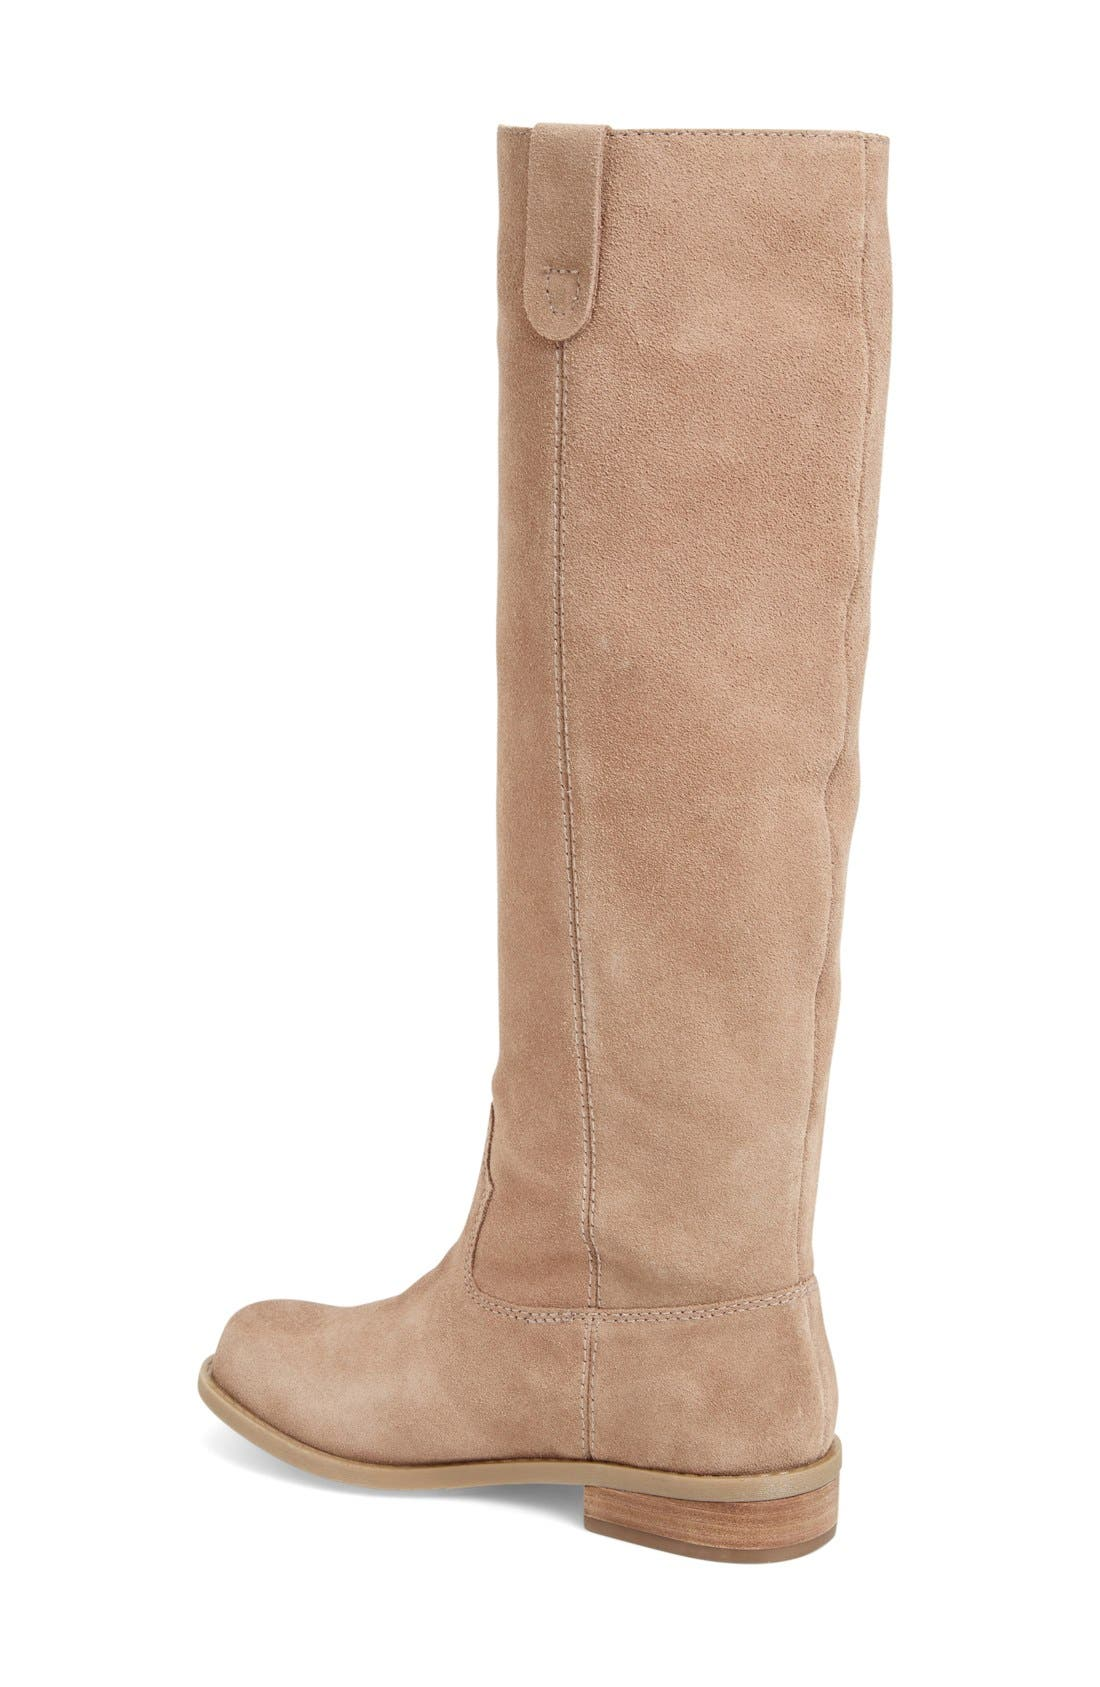 Hawn Knee High Boot,                             Alternate thumbnail 8, color,